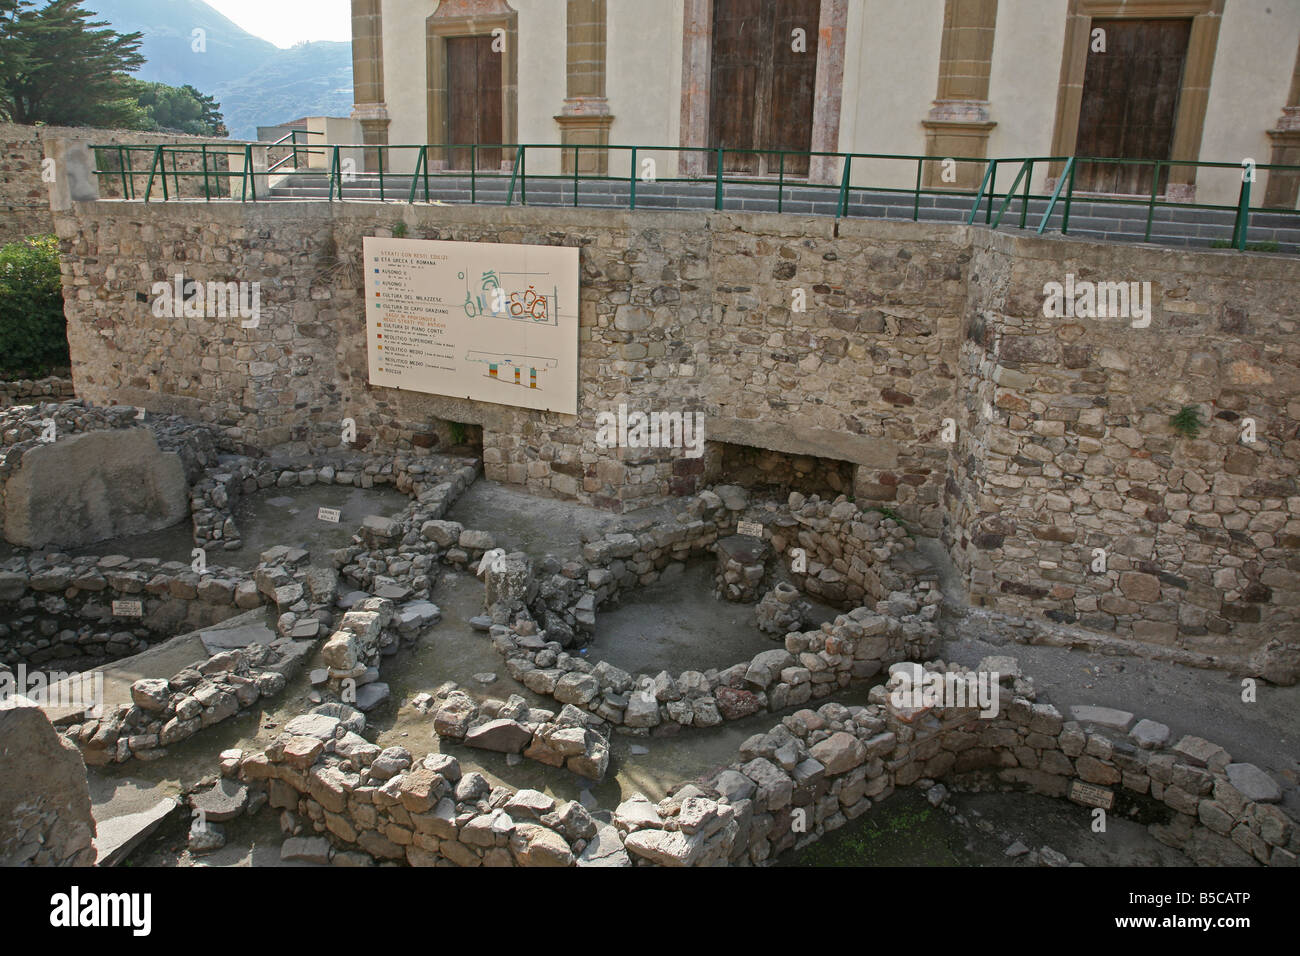 Archeologic excavation at the castle of Lipari, showing remains of prehistoric and Ancient Greek settlements - Stock Image